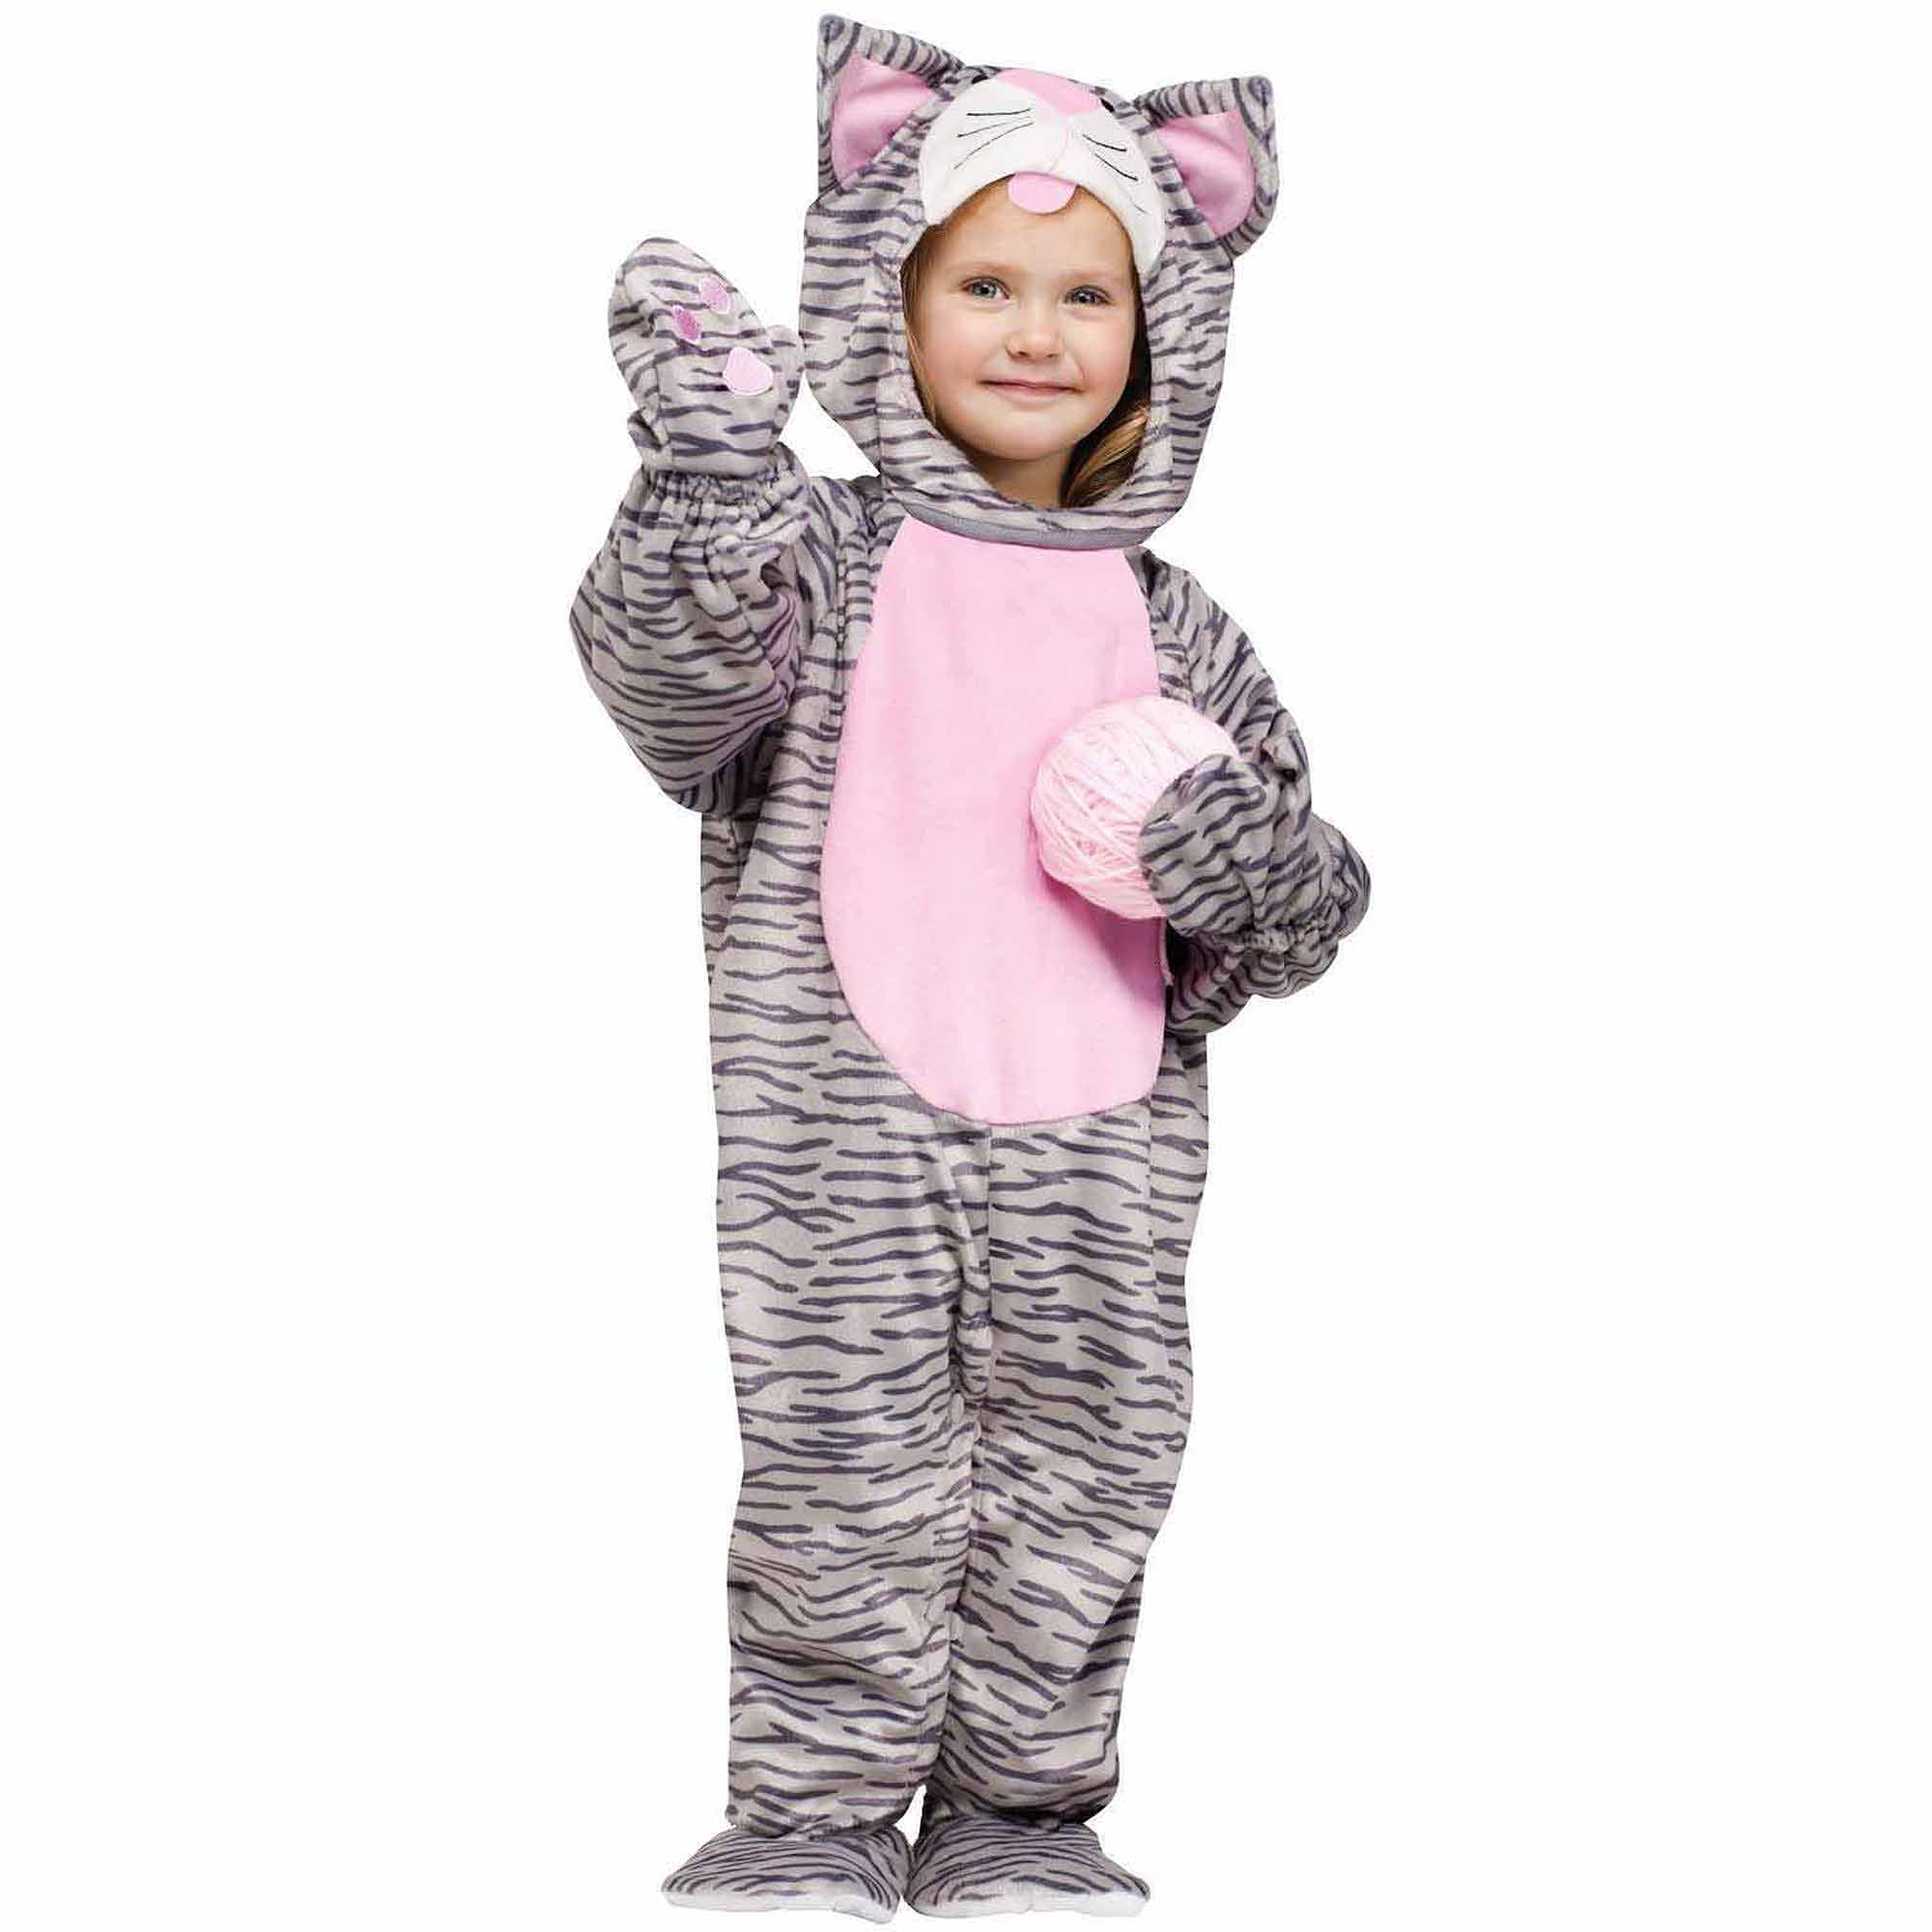 11608234ab1 Little Stripe Kitten Toddler Halloween Costume, Size 3T-4T